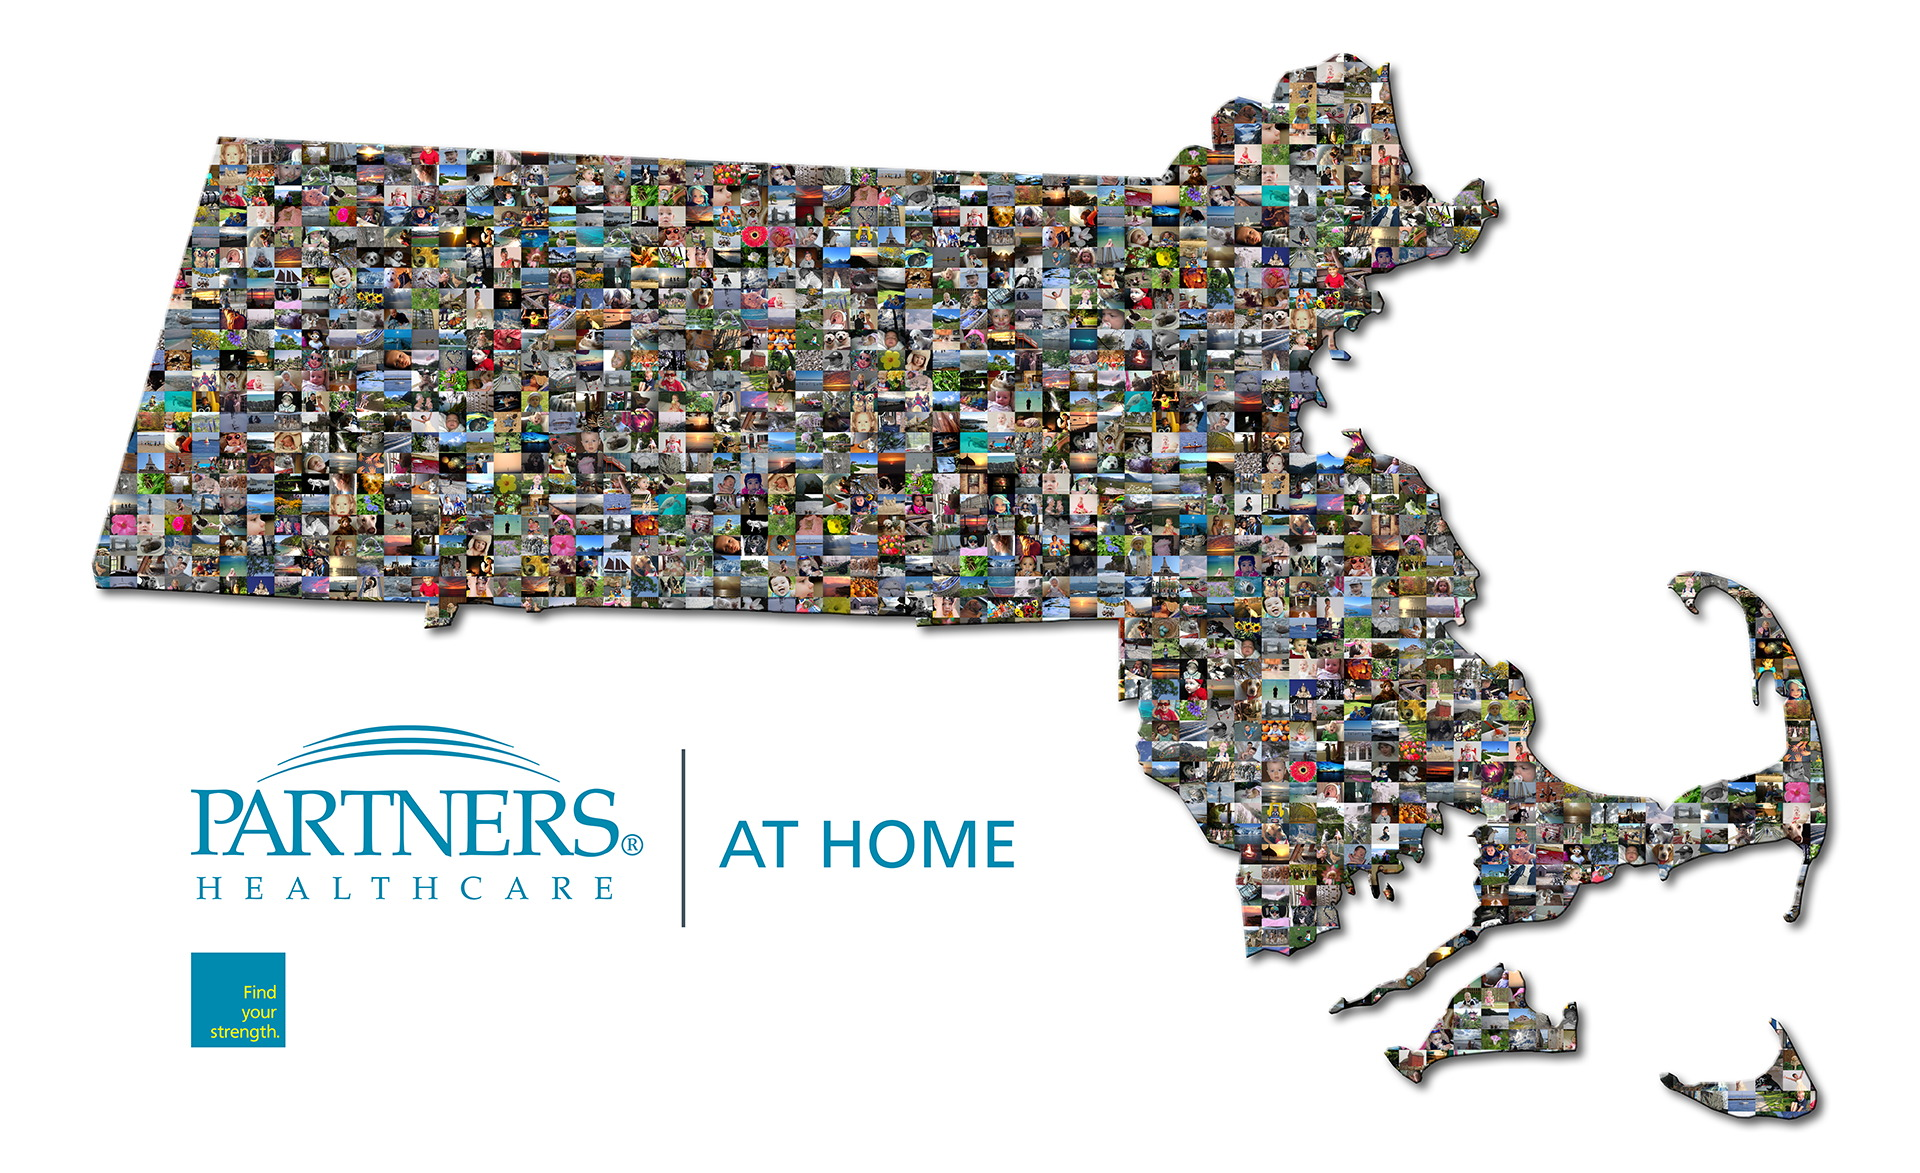 photo mosaic this Partner's Healthcare mosaic was created using over 500 community photos